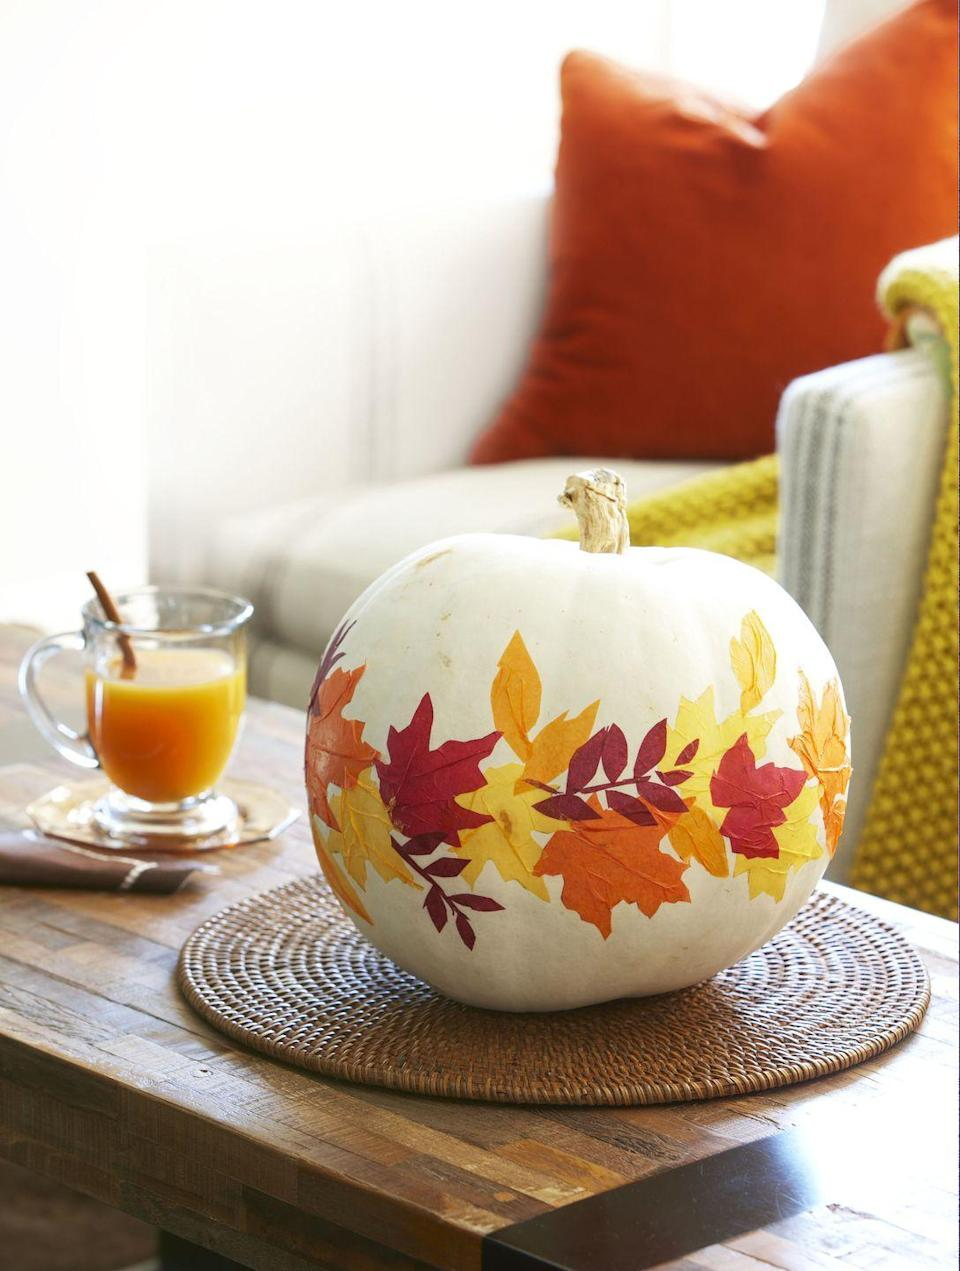 """<p>Paper leaves encircling a white pumpkin make a graphic statement. Trace fallen leaves onto orange, yellow, and dark red tissue paper; cut tracings out and stick them to pumpkin using decoupage glue. With a flat-head bristle brush, push from leaves' outer edges toward the centers to pucker paper slightly and create """"veins""""; let dry. Brush a thin layer of glue over pumpkin.</p>"""